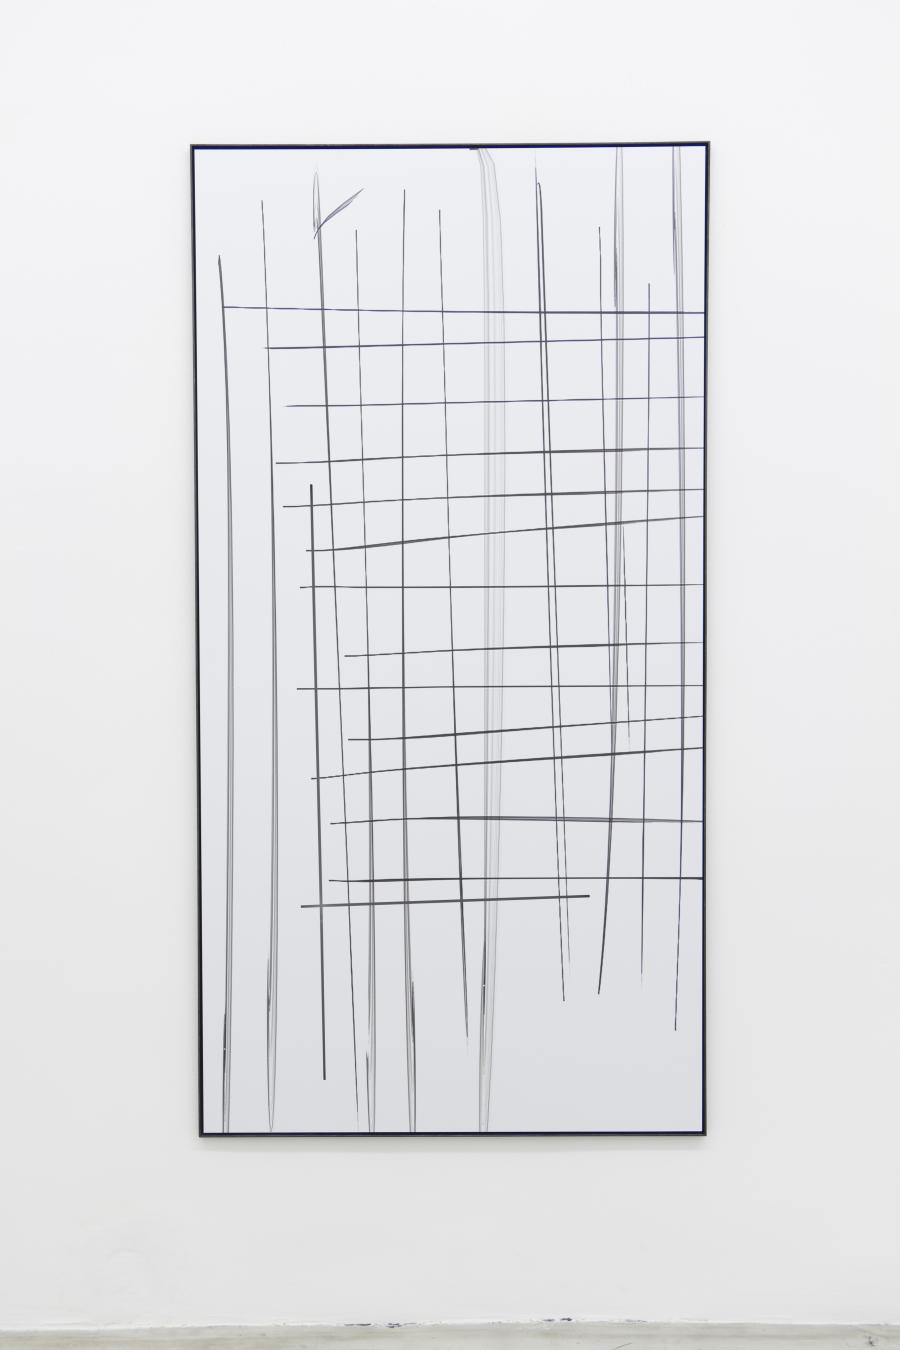 Marina Sula, Drawing - phone, tablet drawing, UV-print on Dibond, laser cut, steel, 172 x 89 cm, 2015